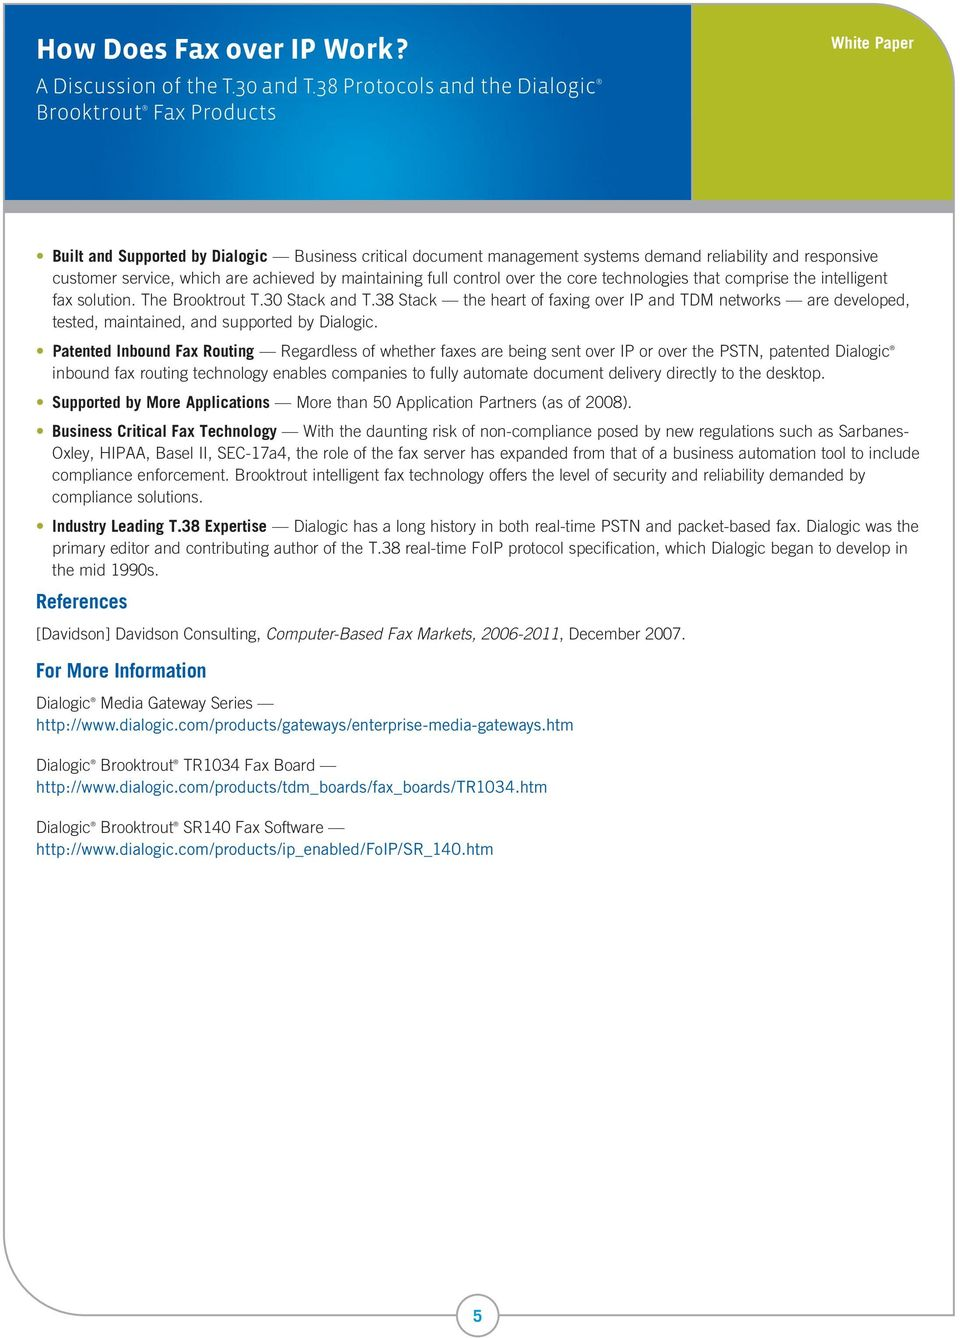 38 Stack the heart of faxing over IP and TDM networks are developed, tested, maintained, and supported by Dialogic.